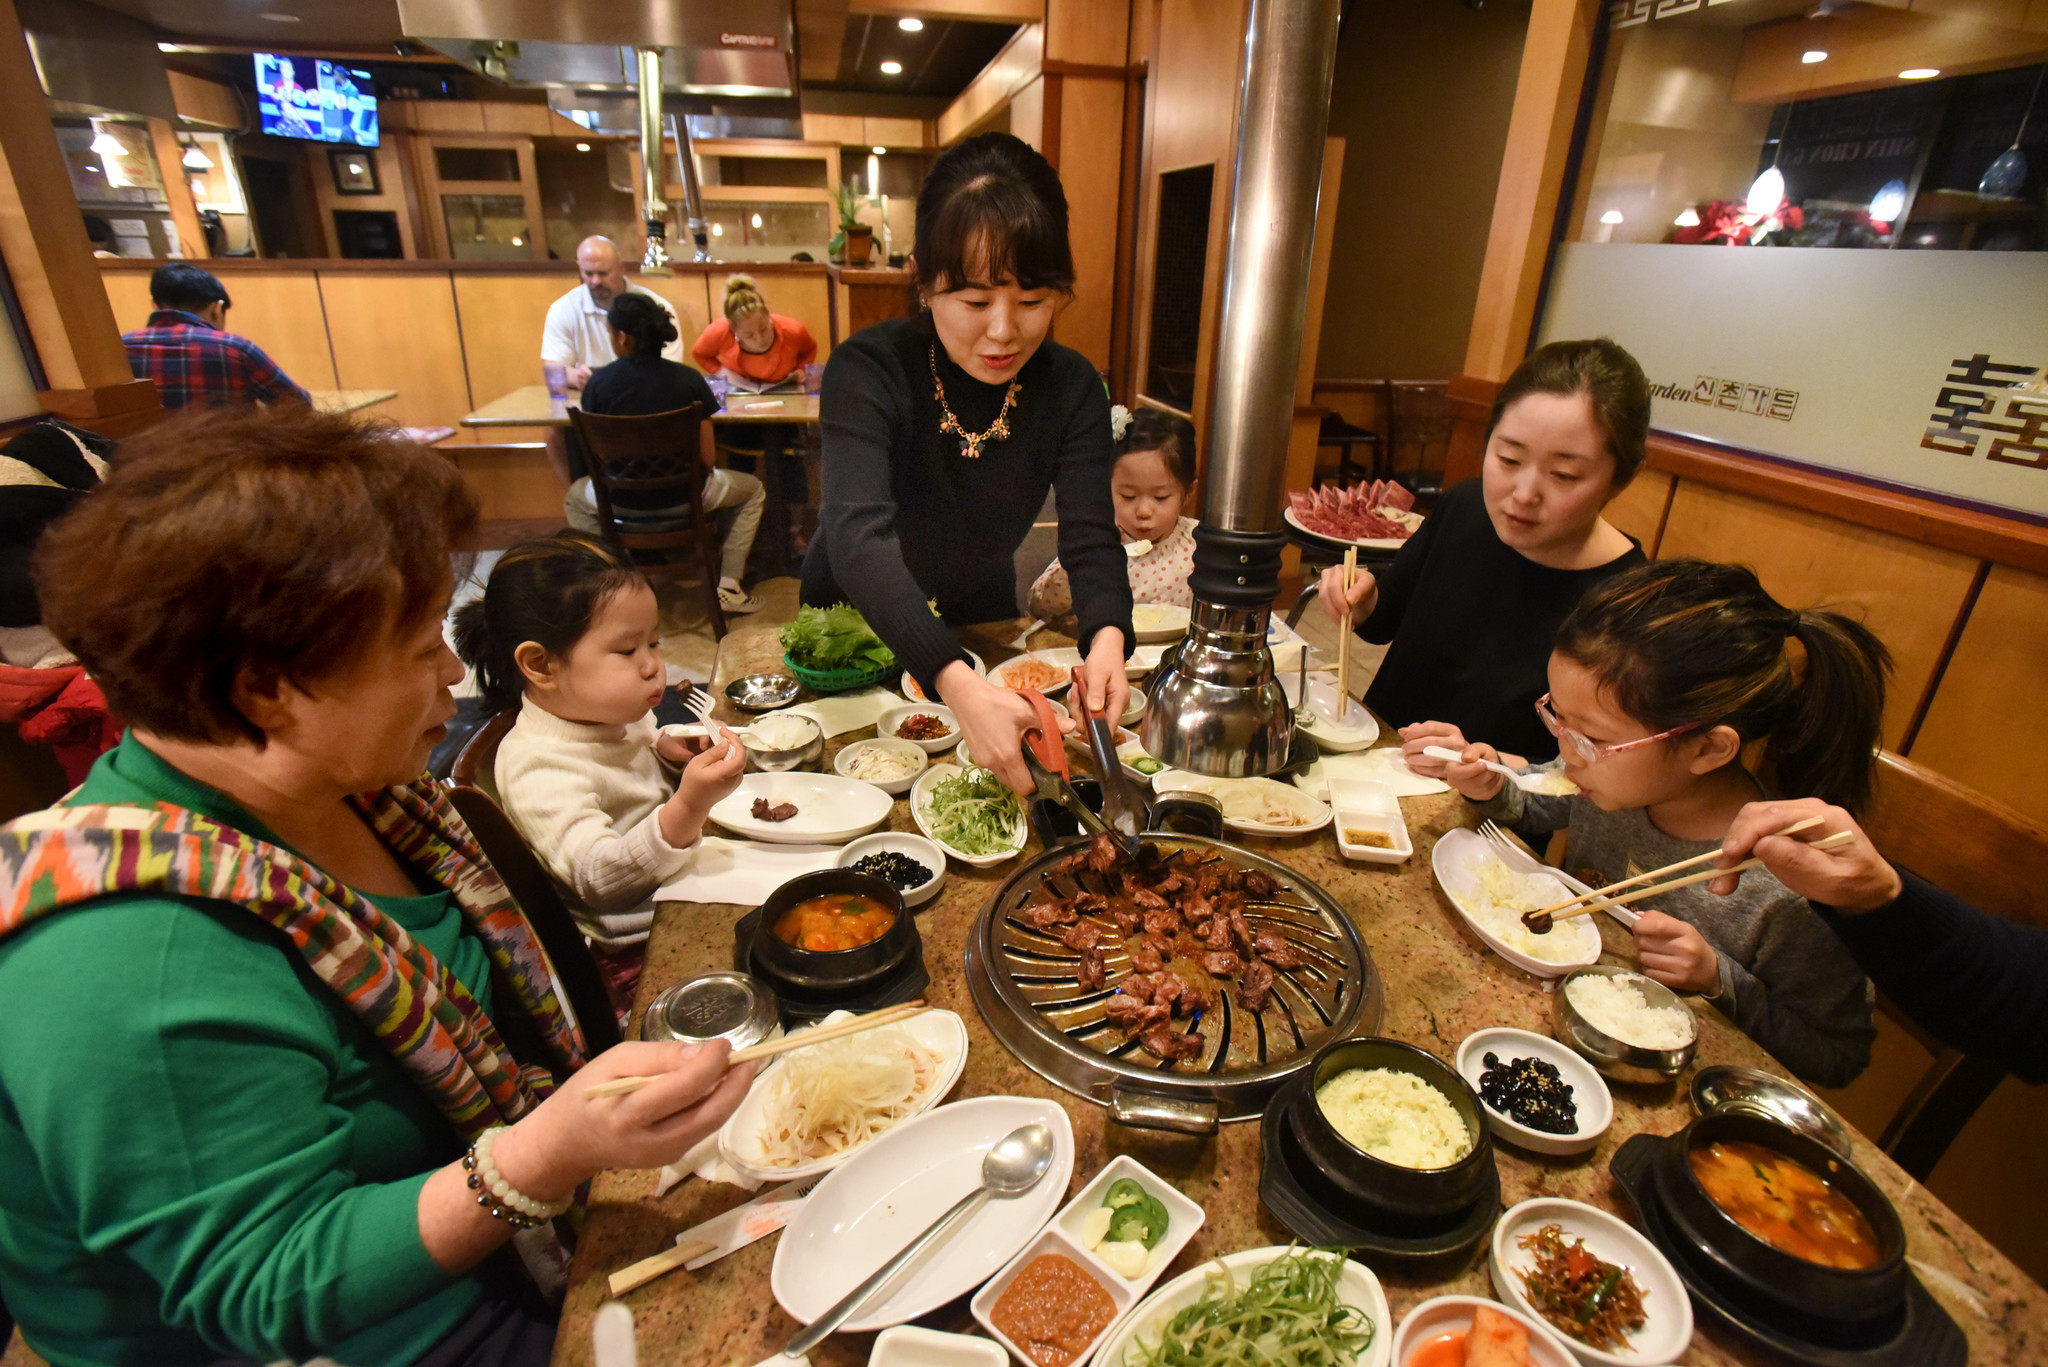 Miha Lee, of Shin Chon, cuts beef on the table grill for the barbecue feast enjoyed by the Ahn famil